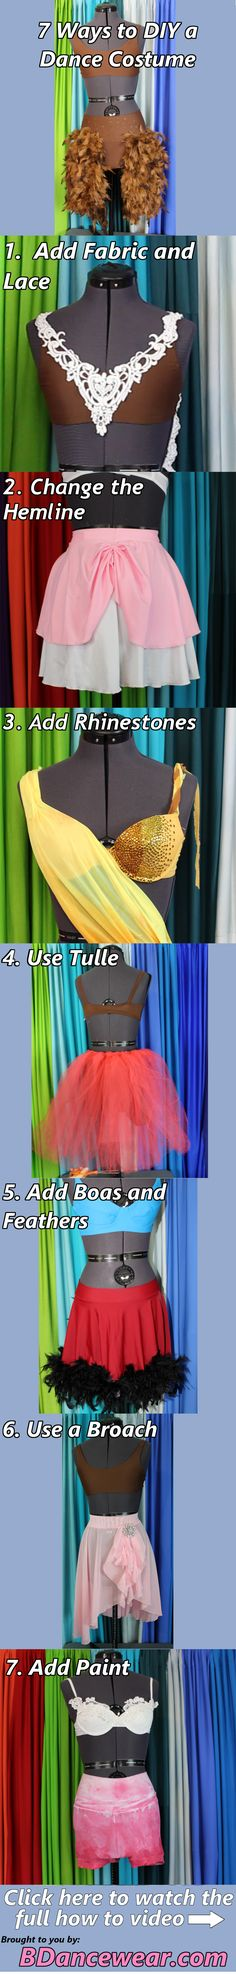 7 Ways to DIY Your Dance Costume including adding fabric and lace, changing the hemline, adding rhinestones, using tulle, adding boas and feathers, using a broach and adding paint.